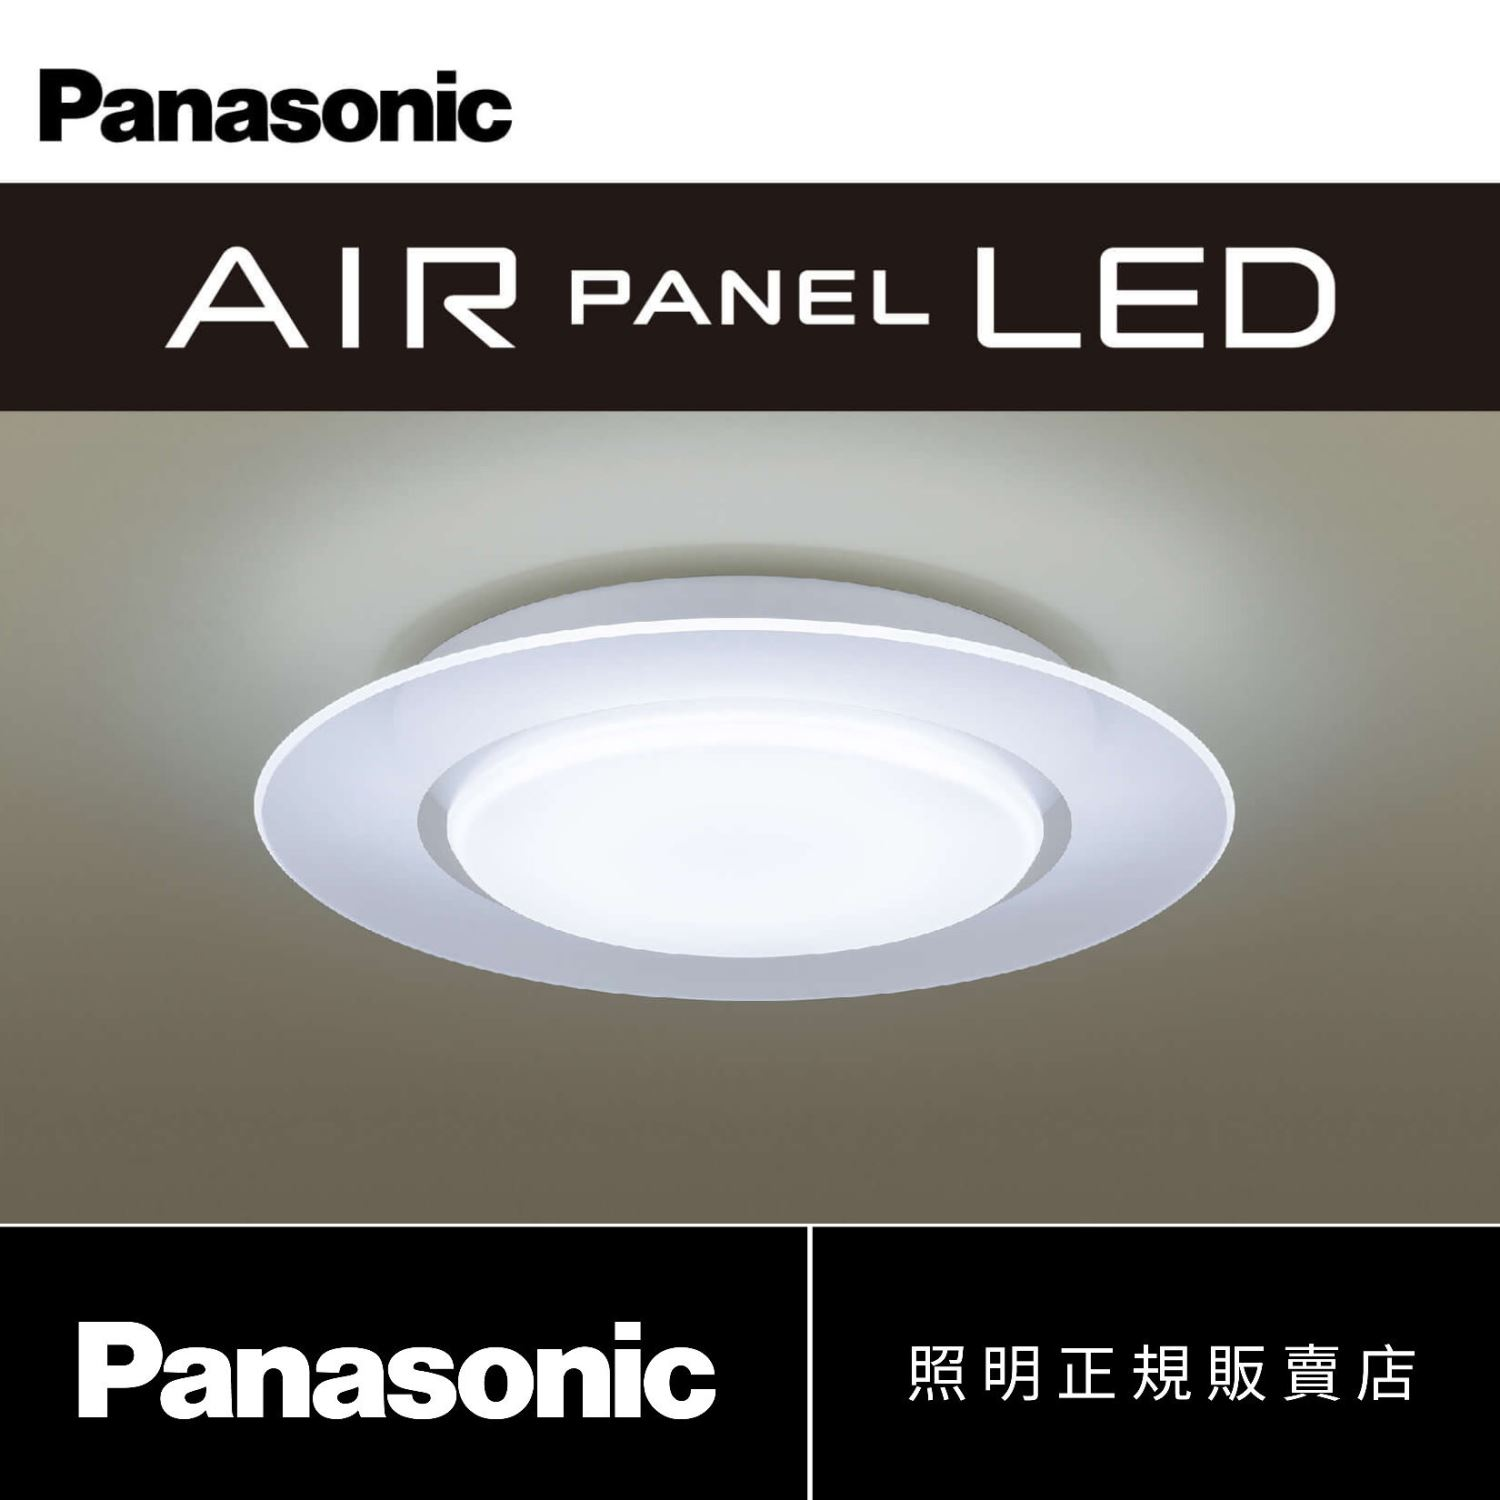 國際牌 2018 LED 49.5W 遙控吸頂燈 HH-LAZ5046209 Panasonic AIR PANEL